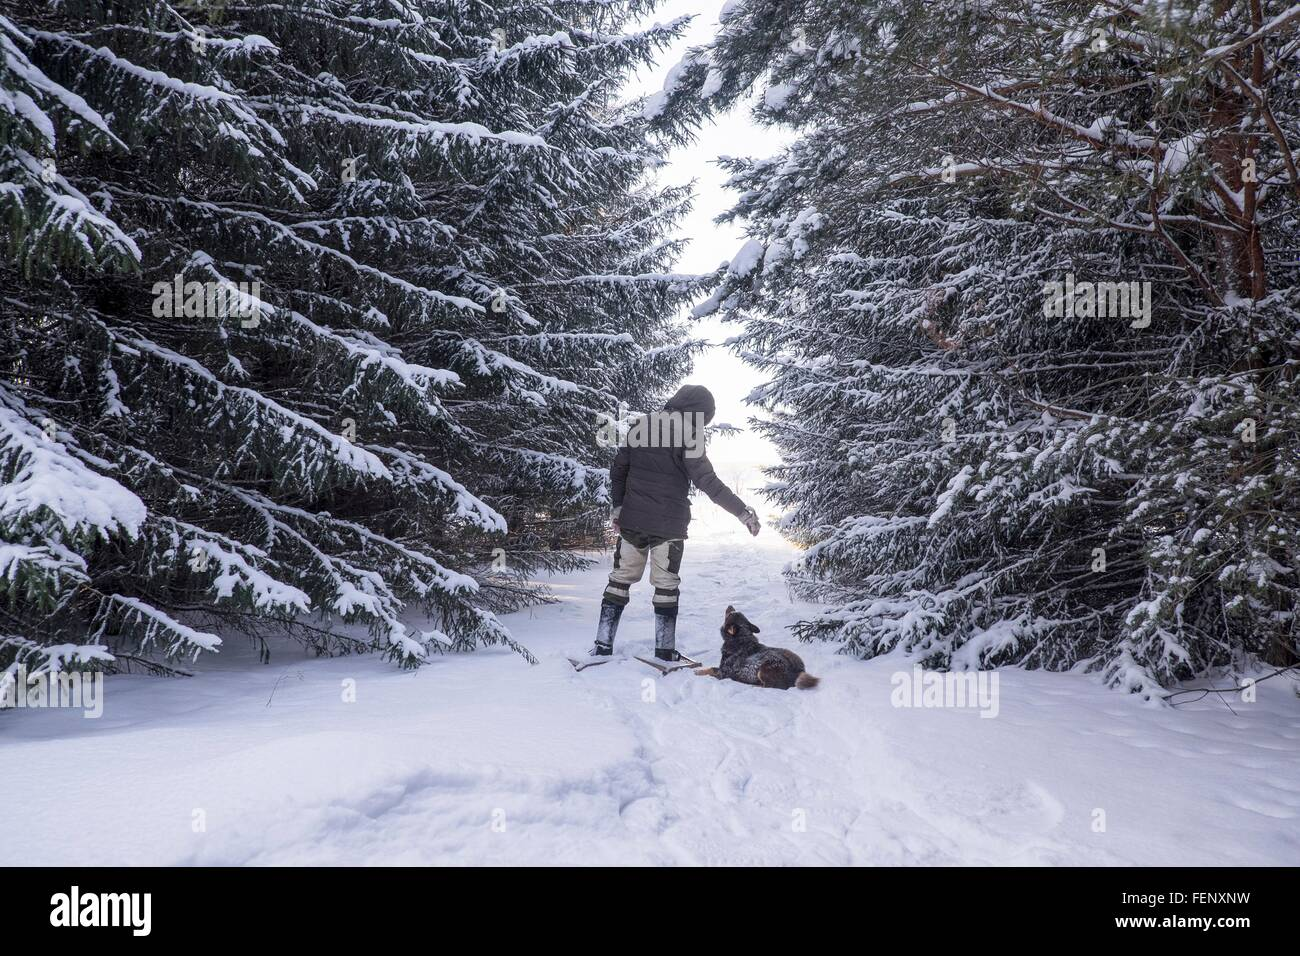 Rear view of man and obedient dog in snow covered forest, Ural, Russia - Stock Image